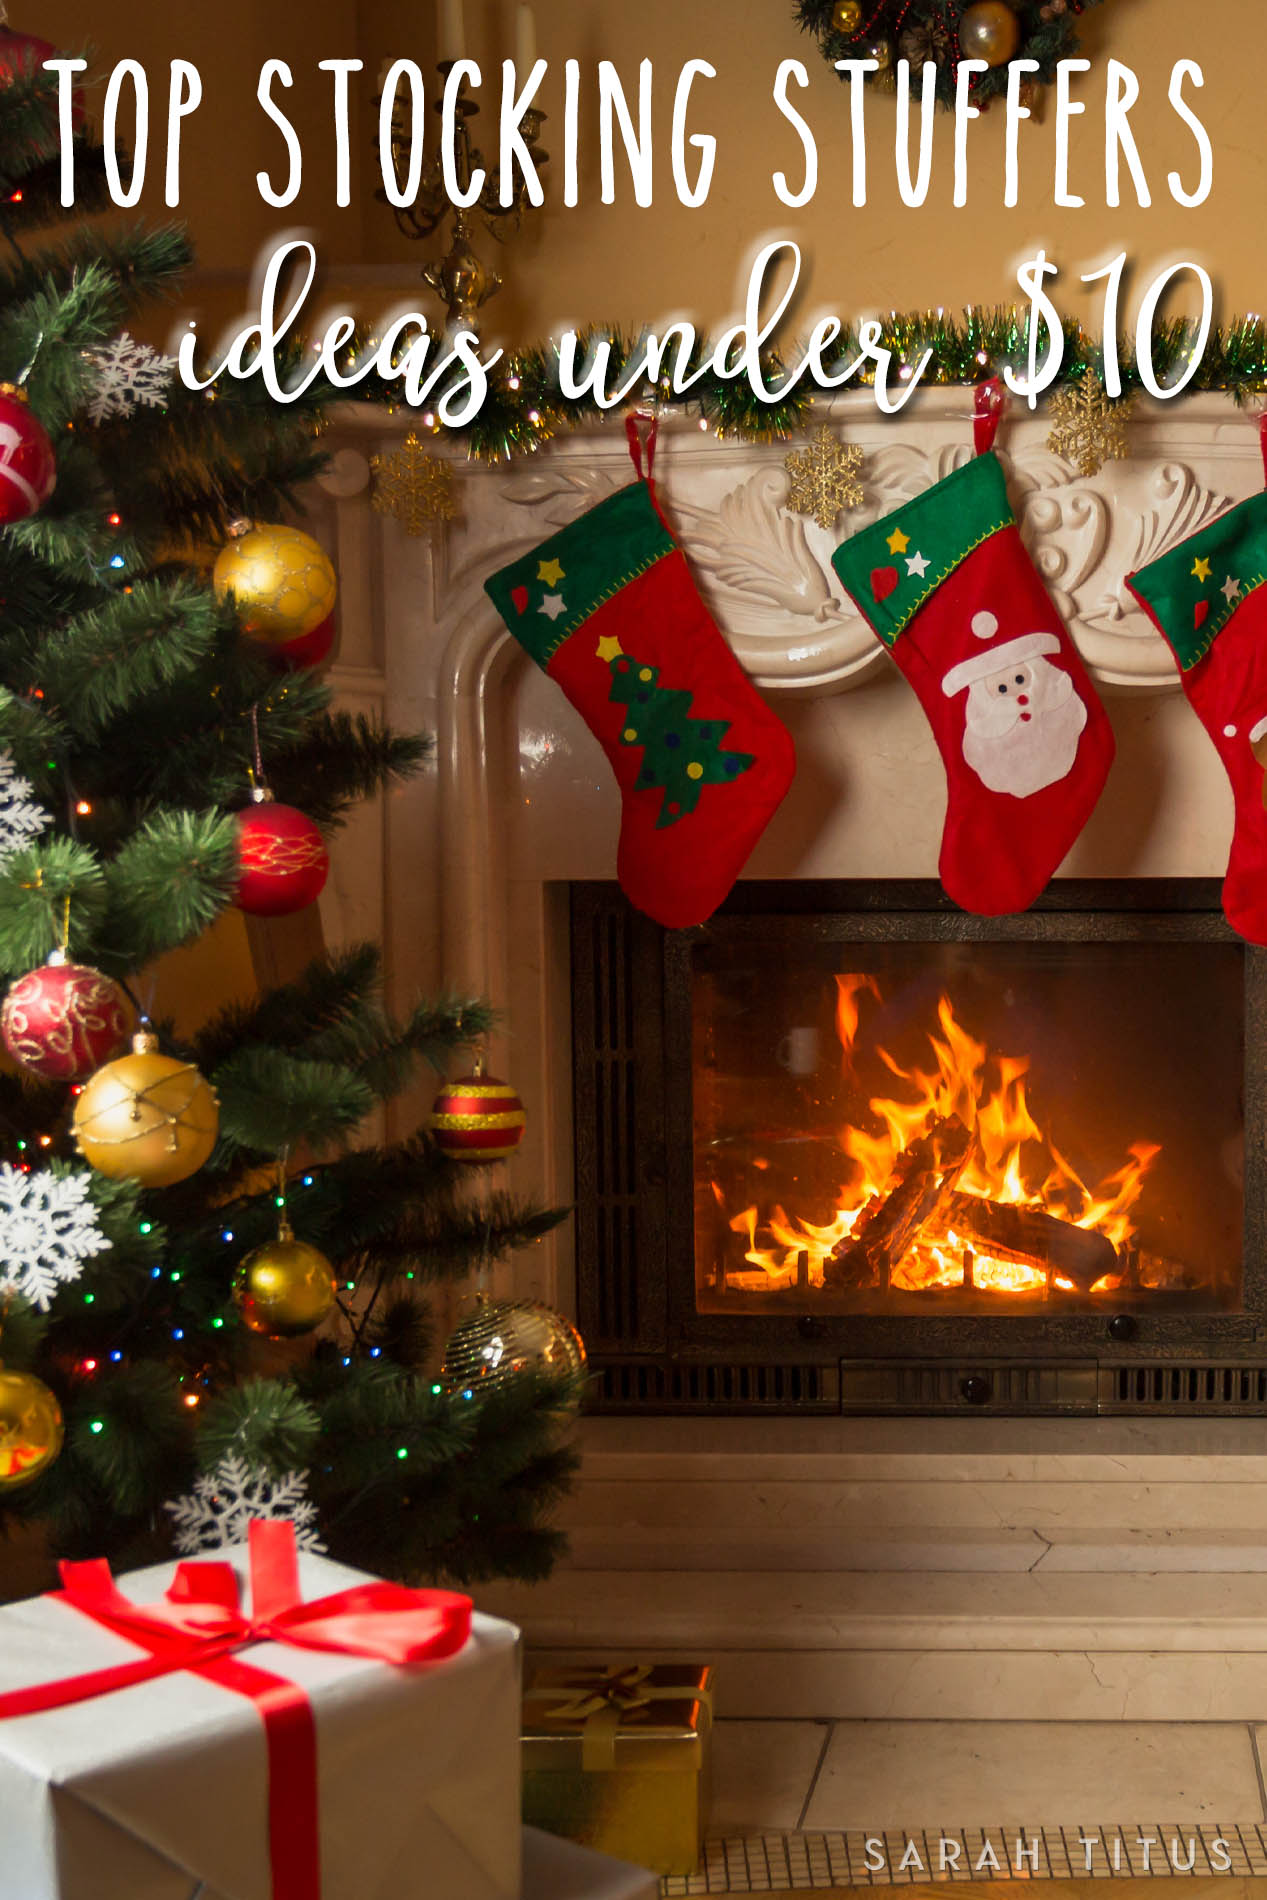 Top Stocking Stuffer Ideas Under $10 - Sarah Titus